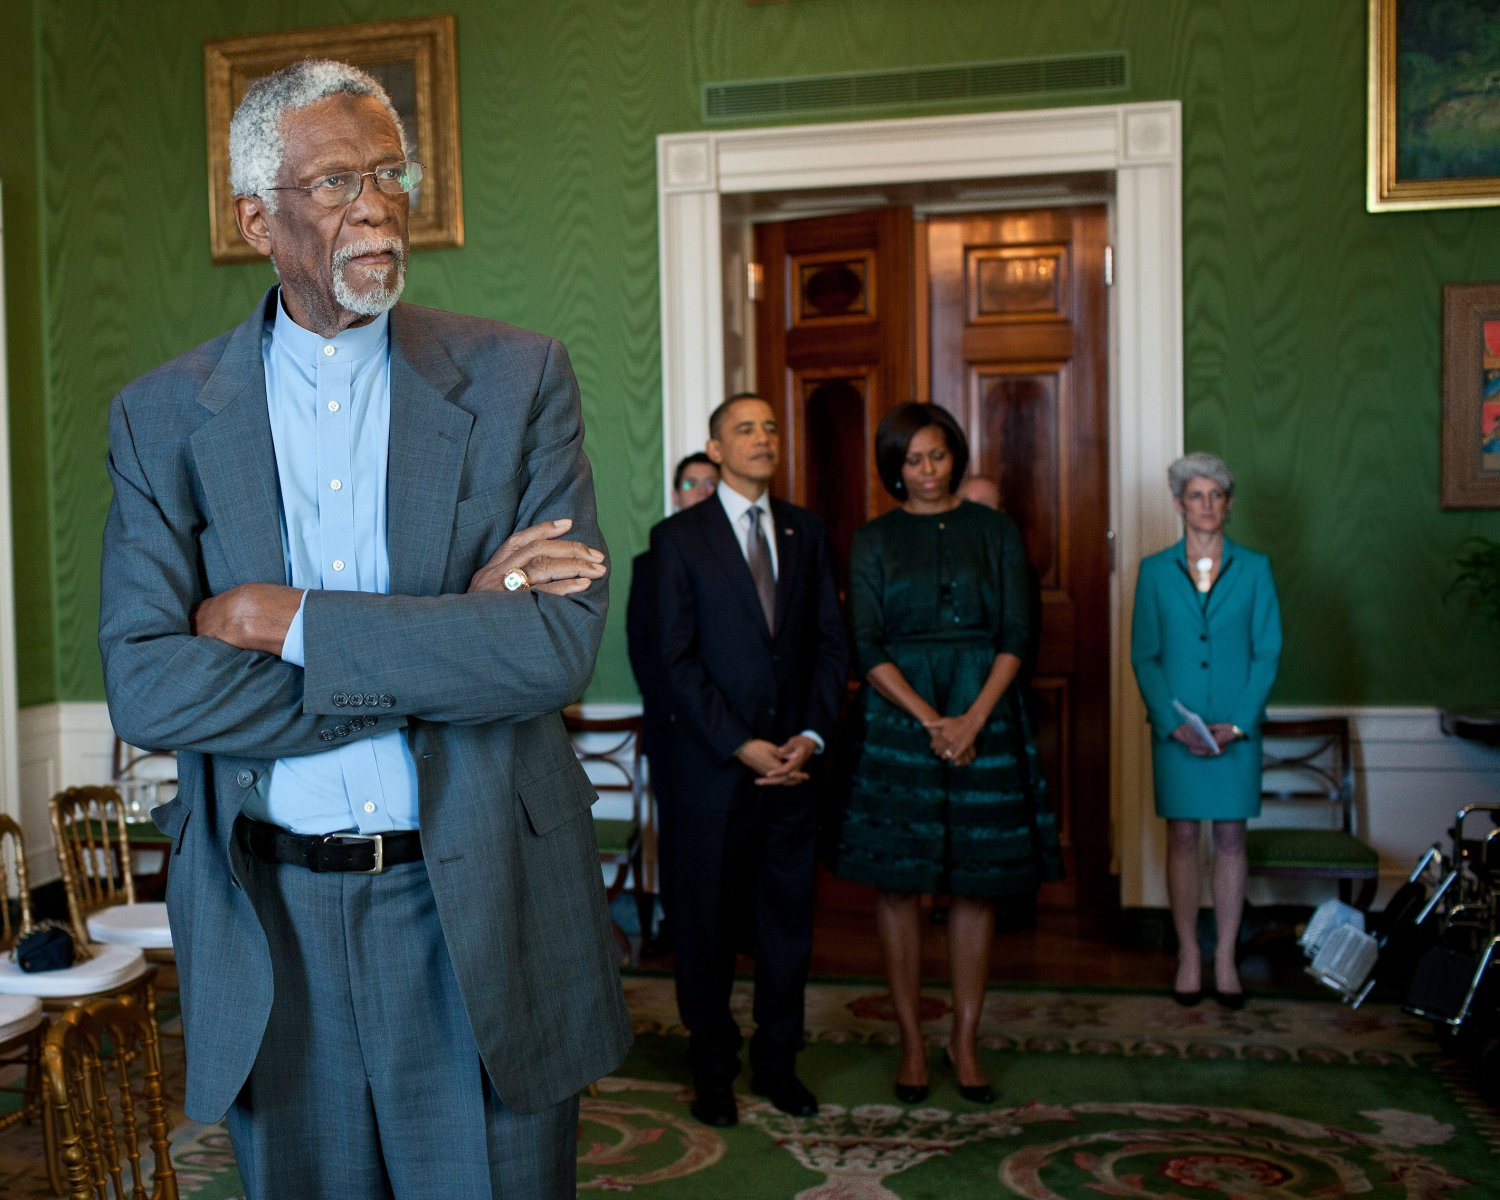 PRESIDENT BARACK OBAMA WITH BASKETBALL LEGEND BILL RUSSELL - 8X10 PHOTO (ZY-507)